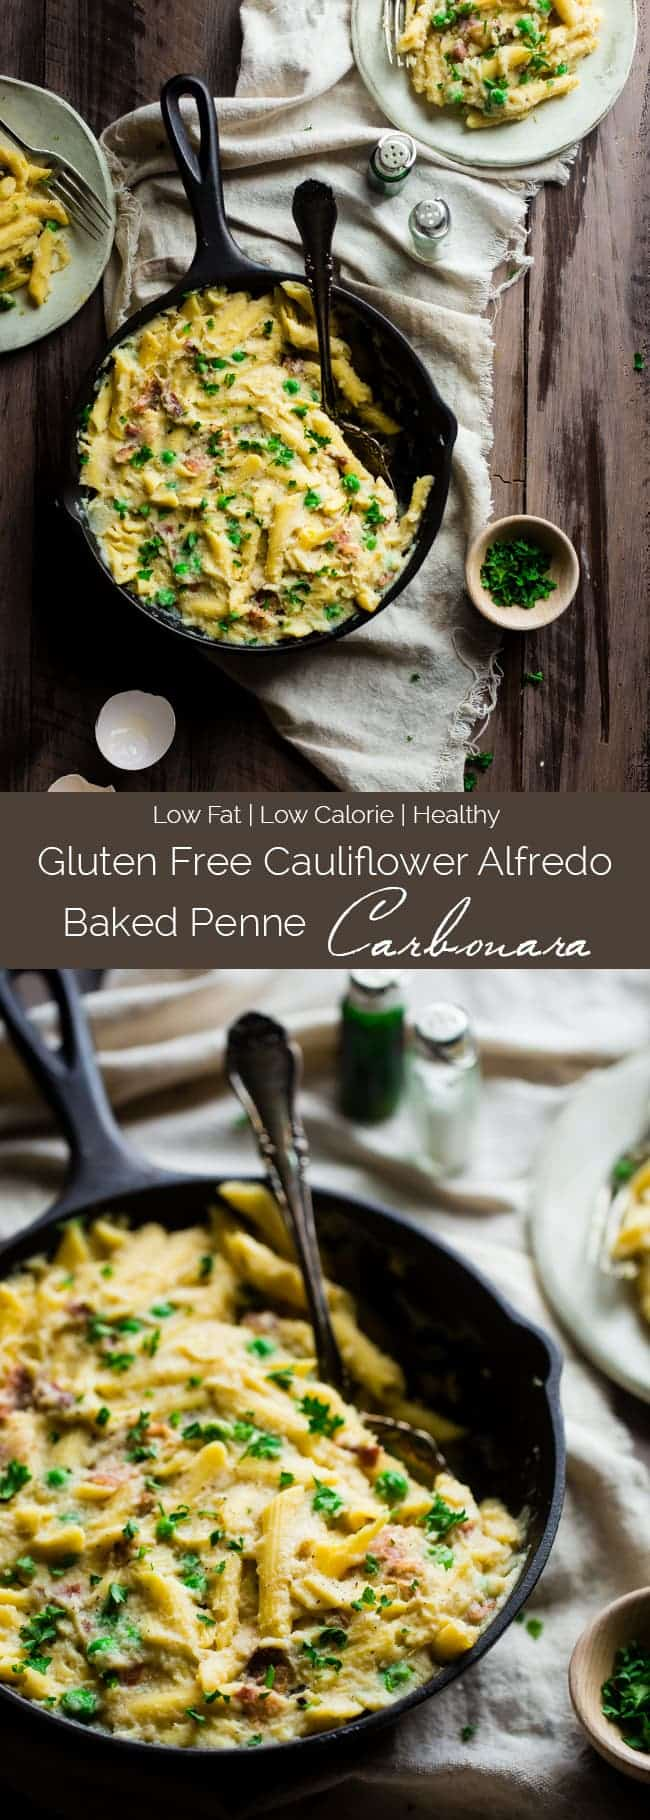 Gluten Free Cauliflower Alfredo Baked Penne Carbonara - This easy pasta bake uses cauliflower alfredo sauce to make it extra creamy! You'll never believe it's dairy/gluten free, low fat and packed with hidden veggies! | Foodfaithfitness.com | @FoodFaithFit